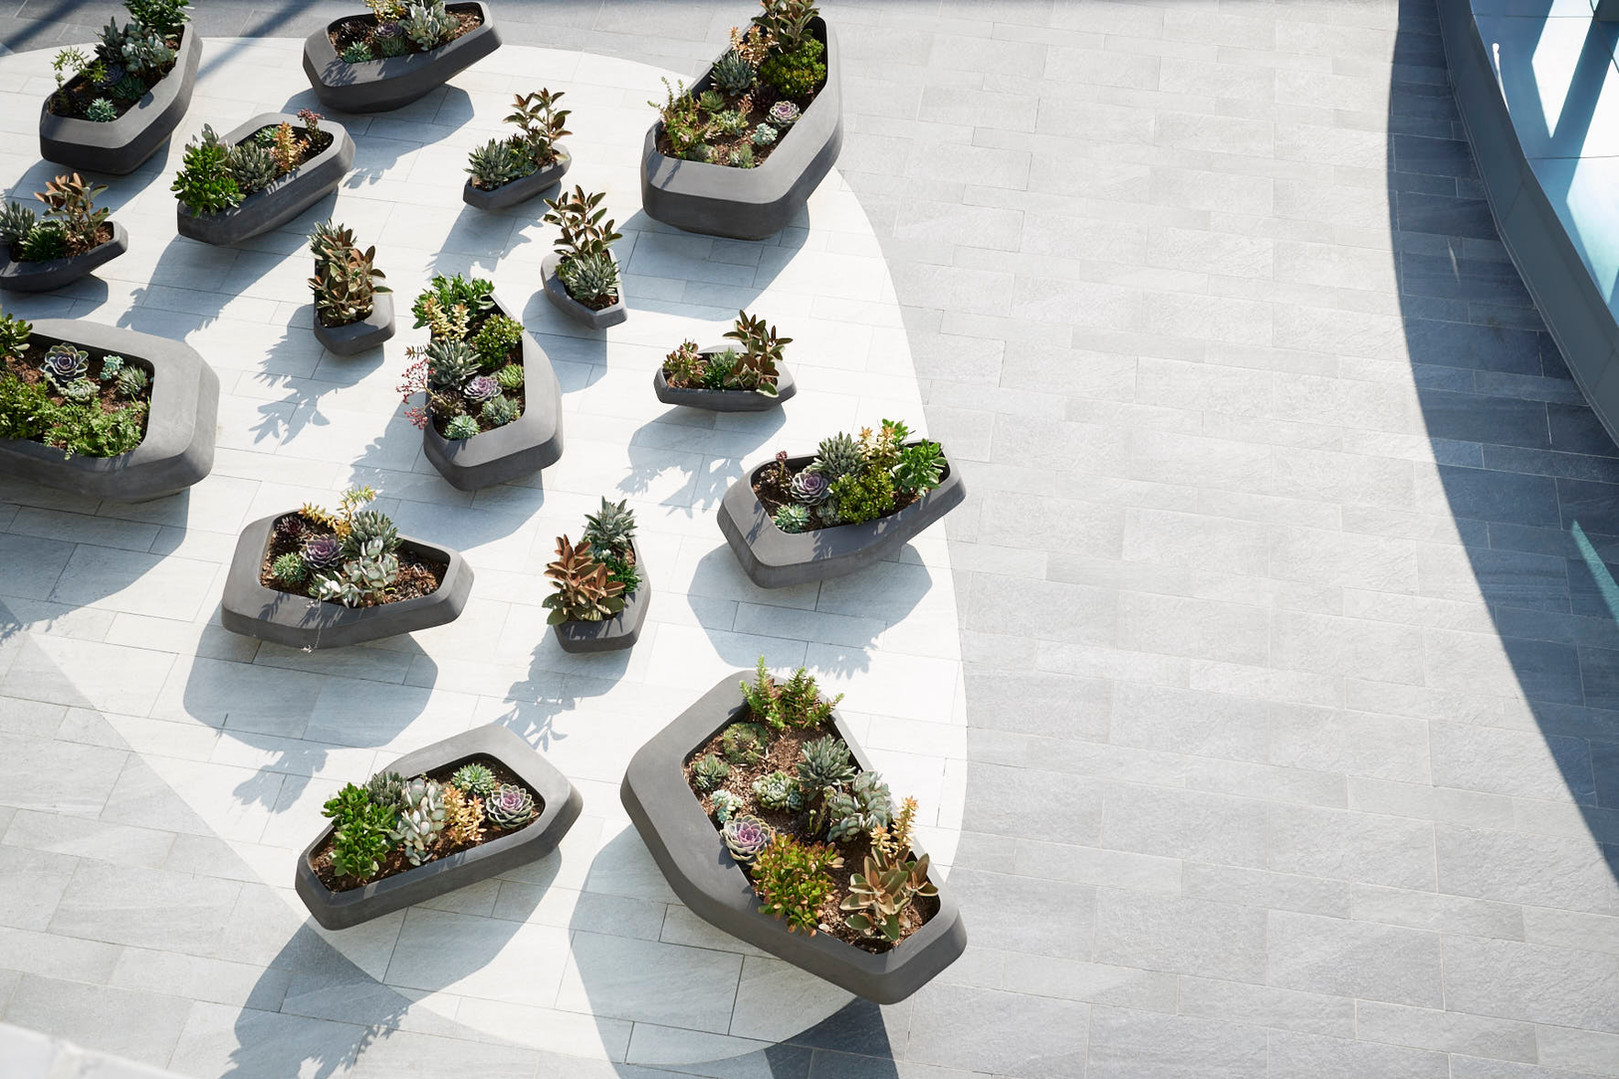 Steen Planters by Greg Truen & Stefan Antoni from SAOTA for Indigenus